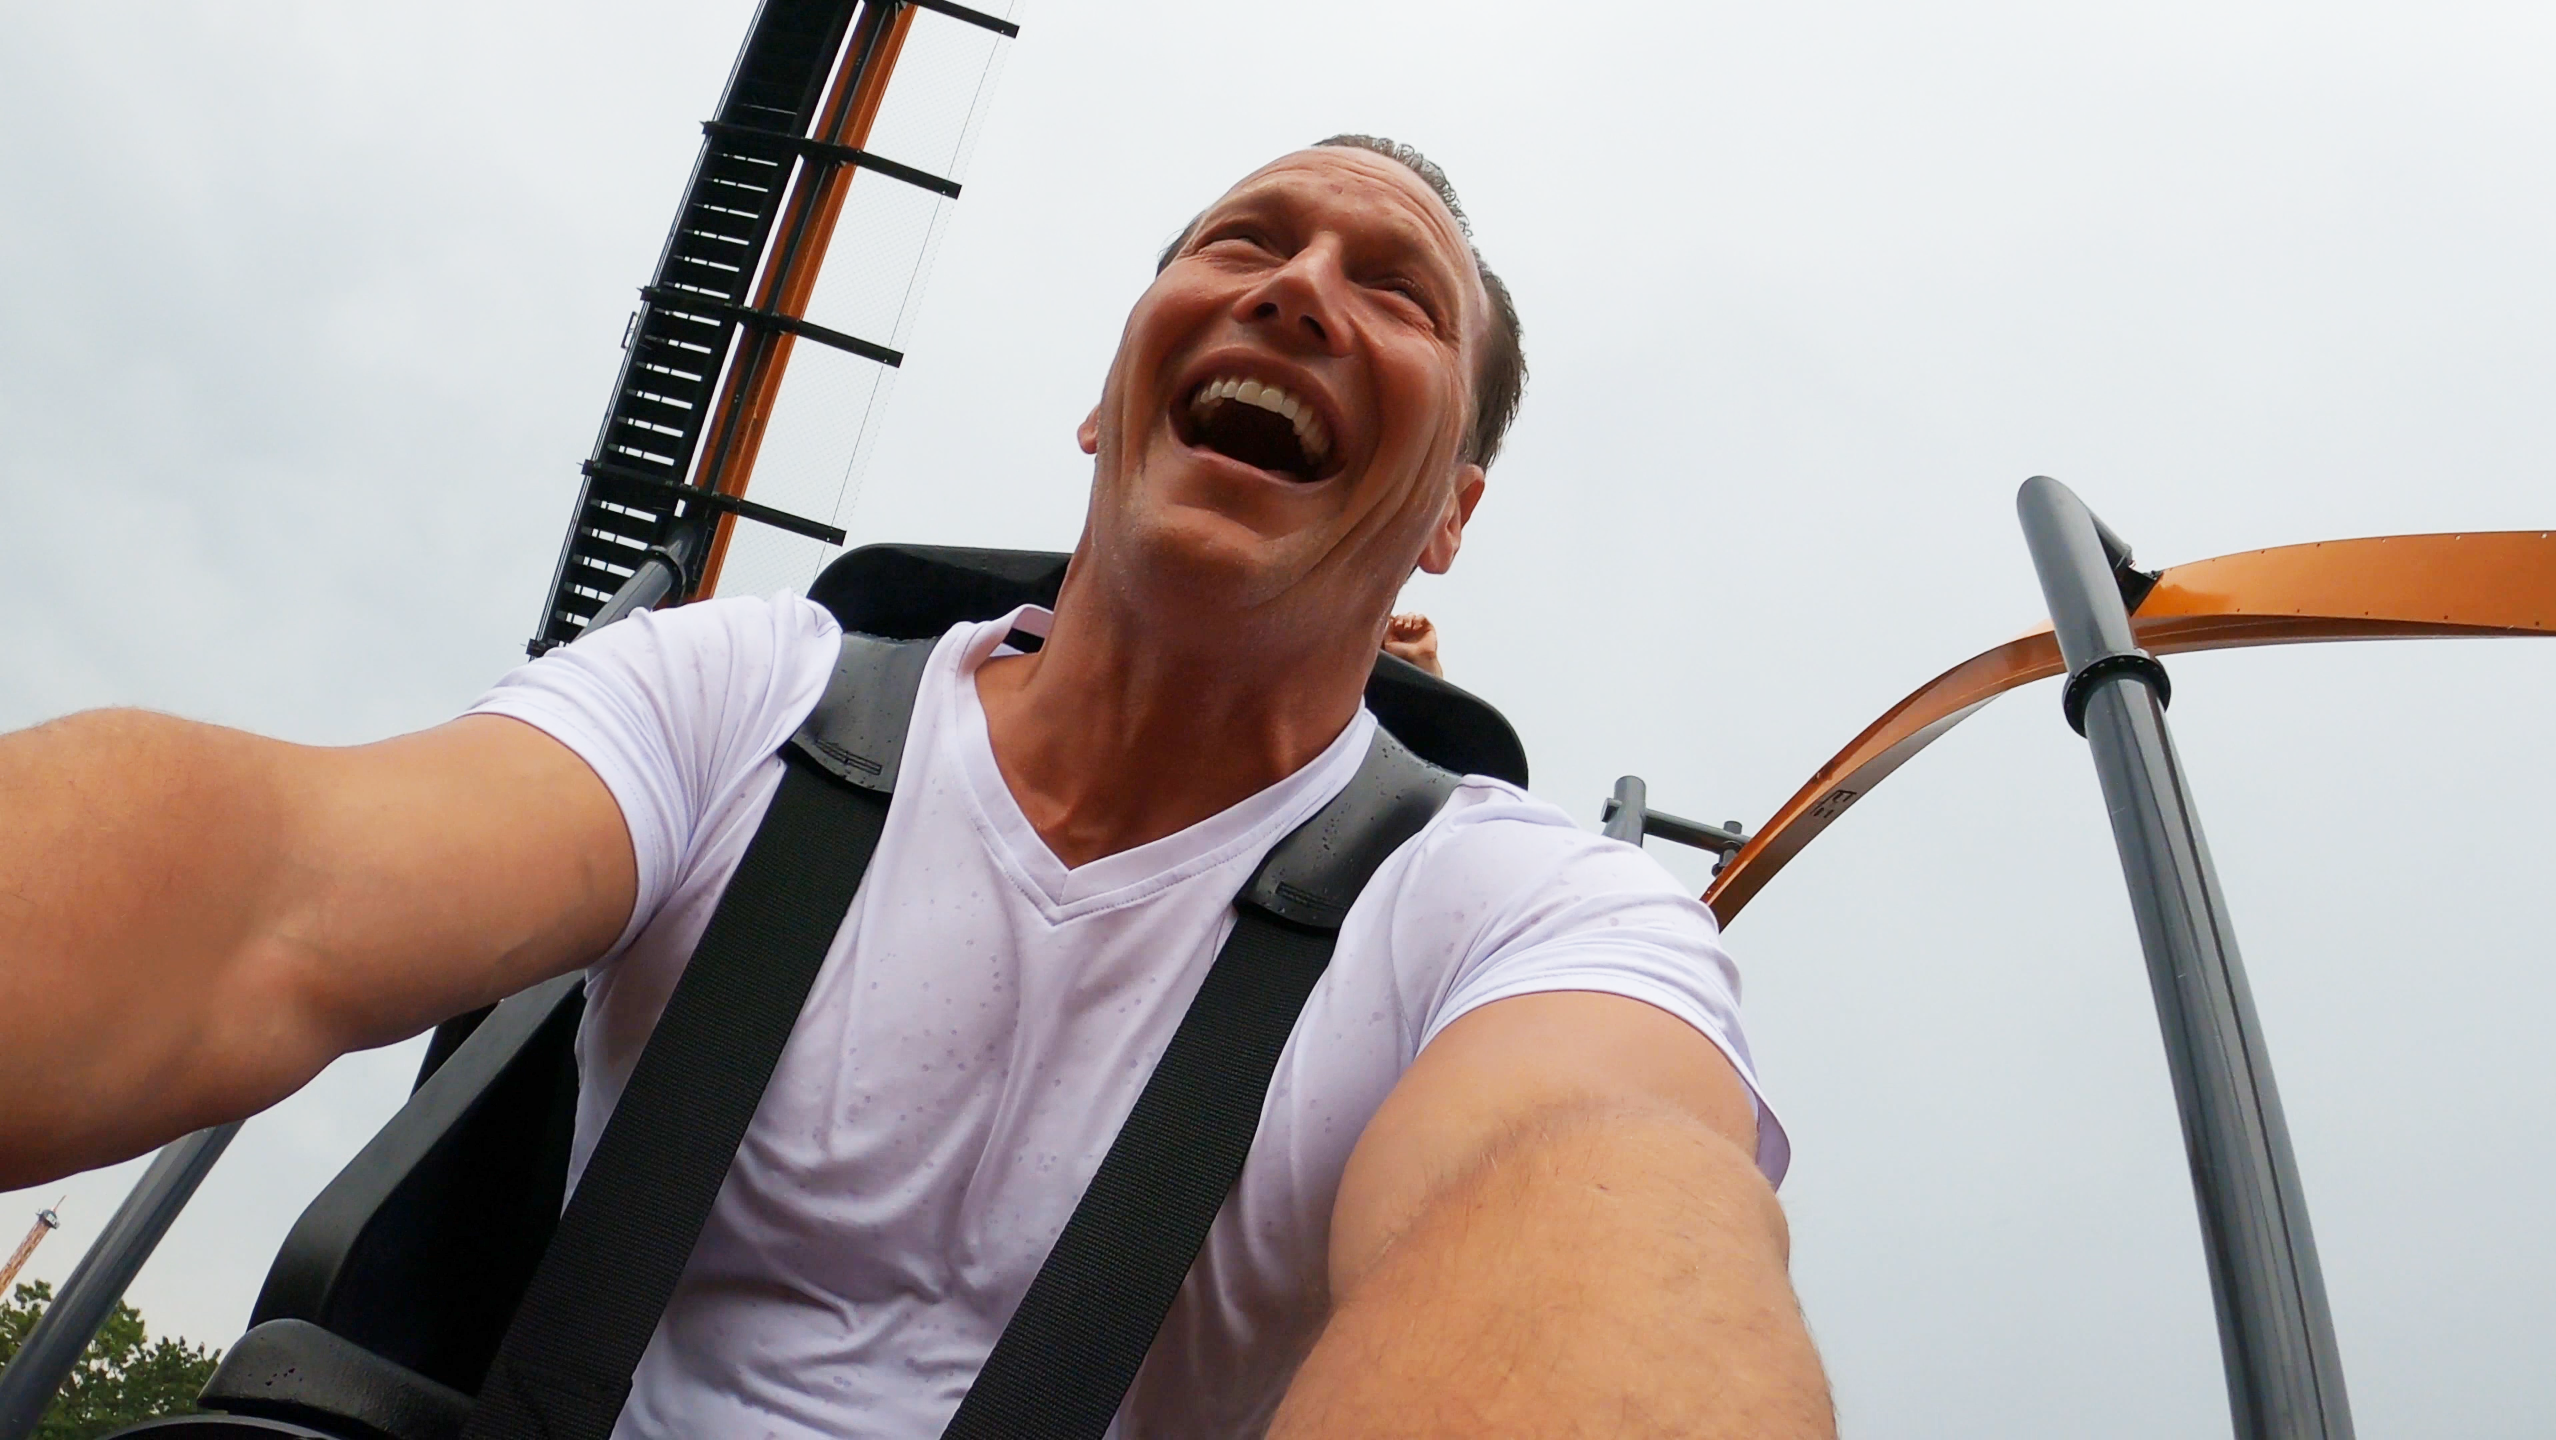 'The Conjuring' star Patrick Wilson rides Jersey Devil Coaster at Six Flags